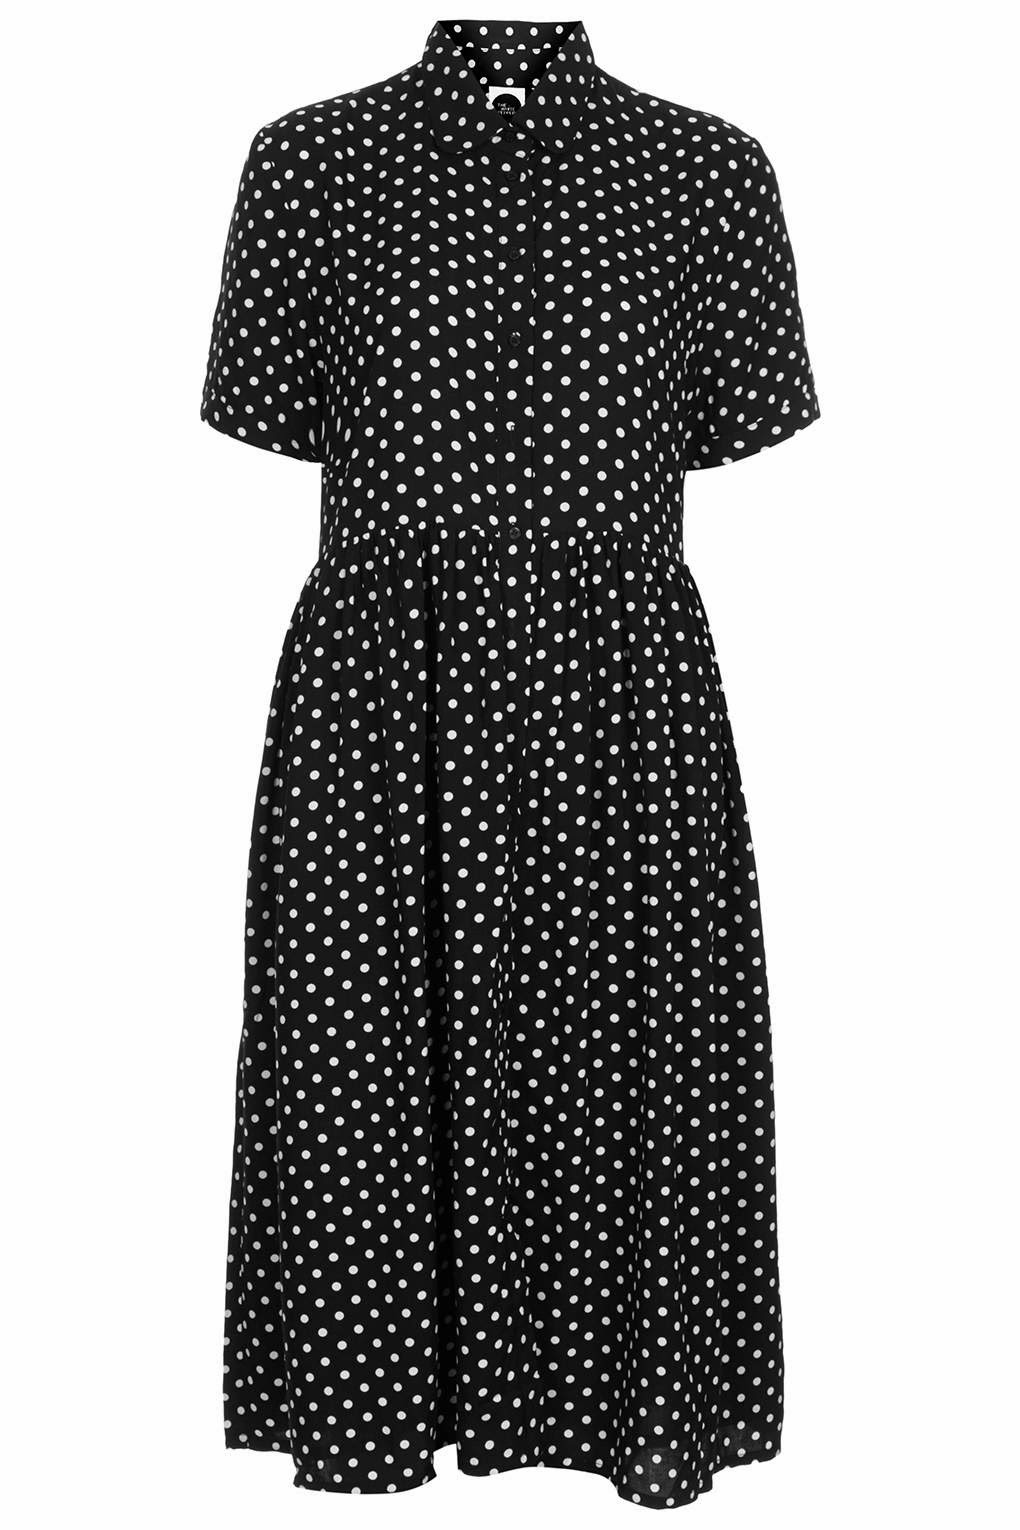 spotty shirt dress